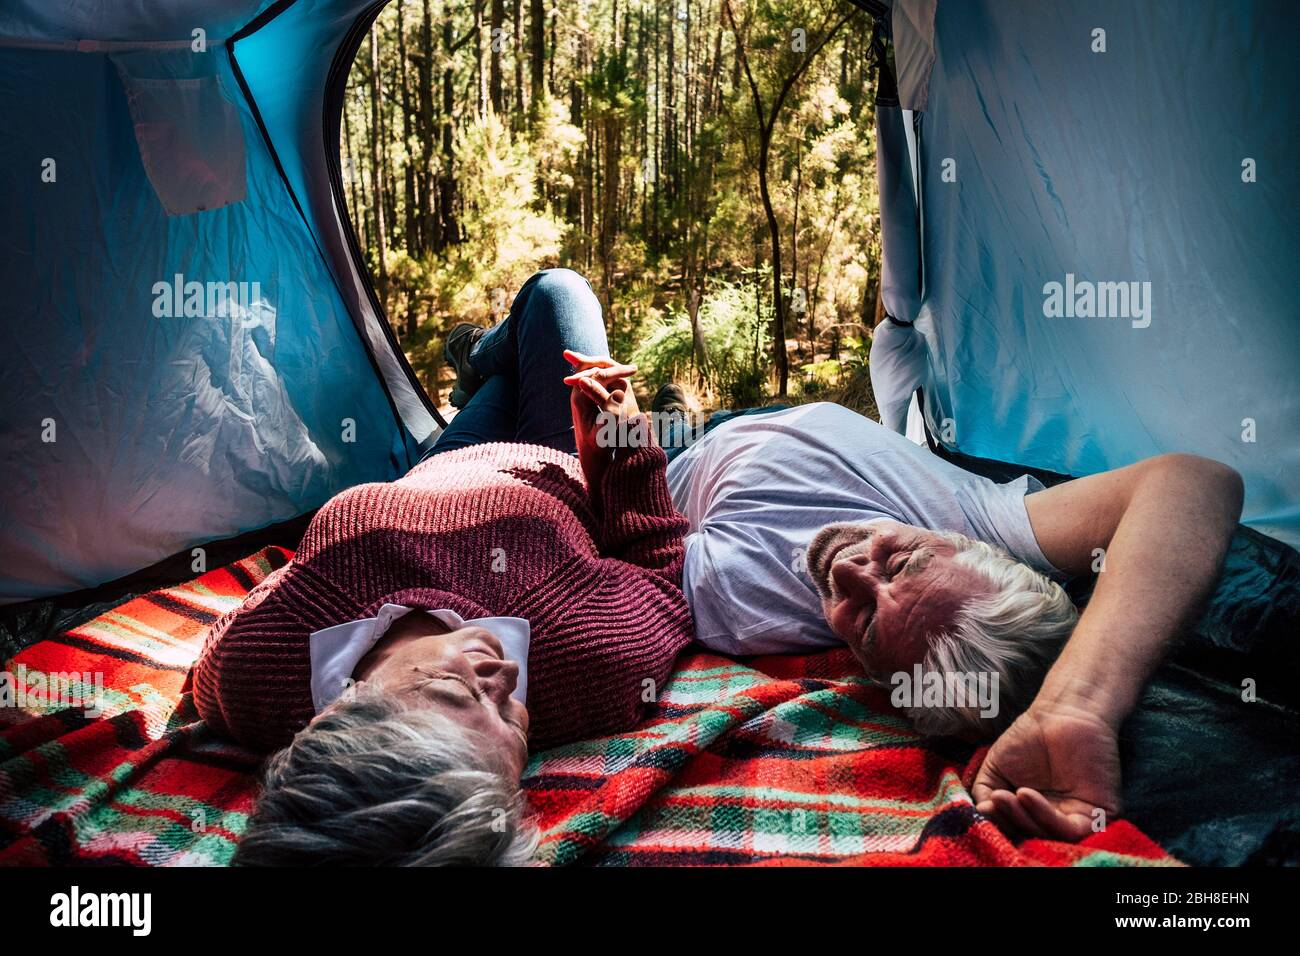 adult senior couple rest lay down inside a tent in free wild camping in the forest for alternative travel and lifestyle. Love forever together concept for man and woman taking hands andd look eachother - outdoor nature activity Stock Photo